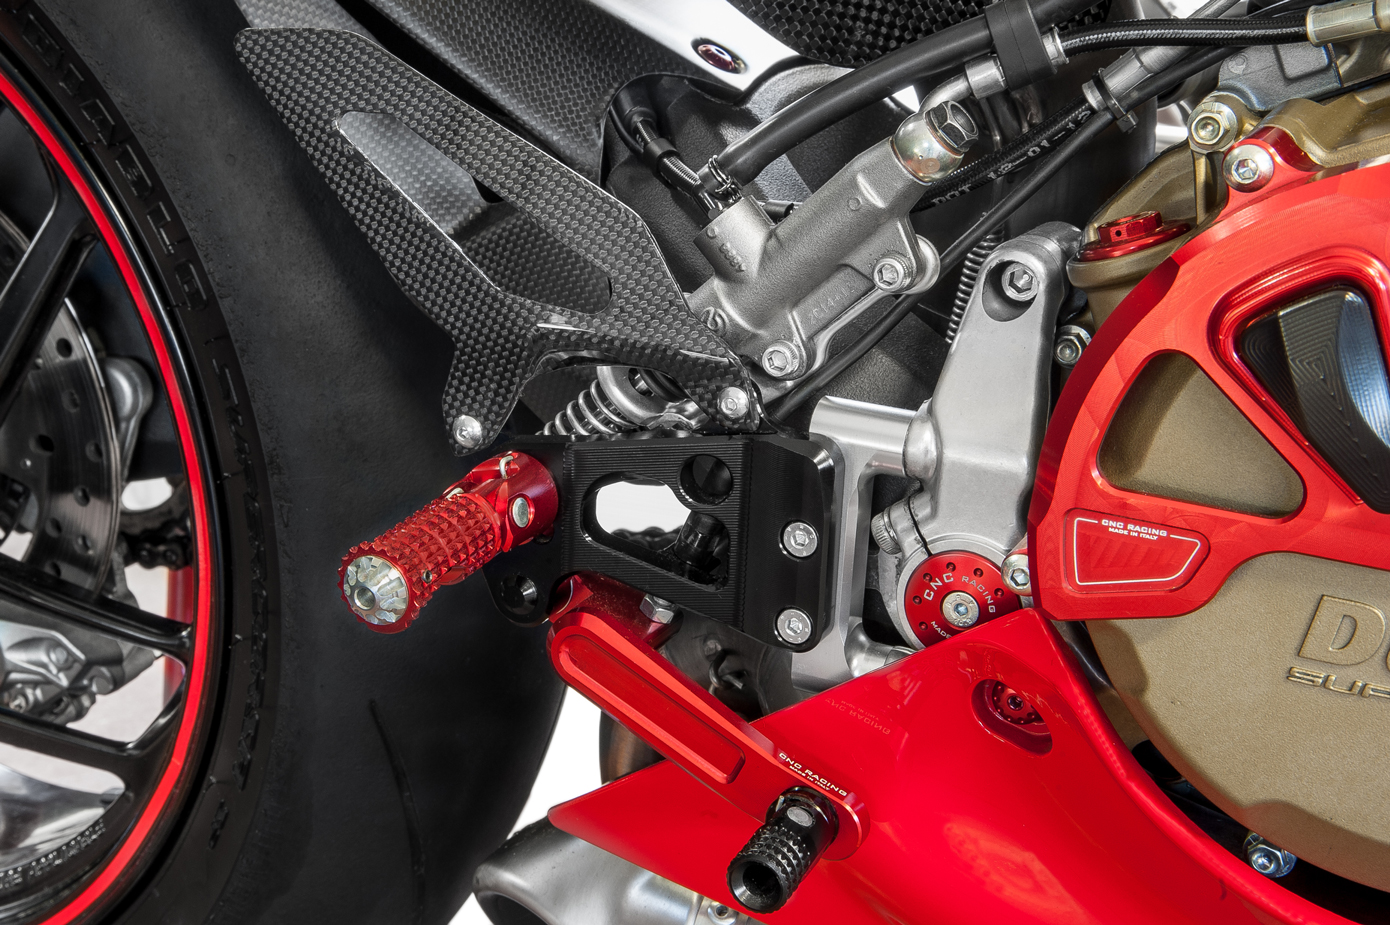 Ducati Panigale R Price South Africa